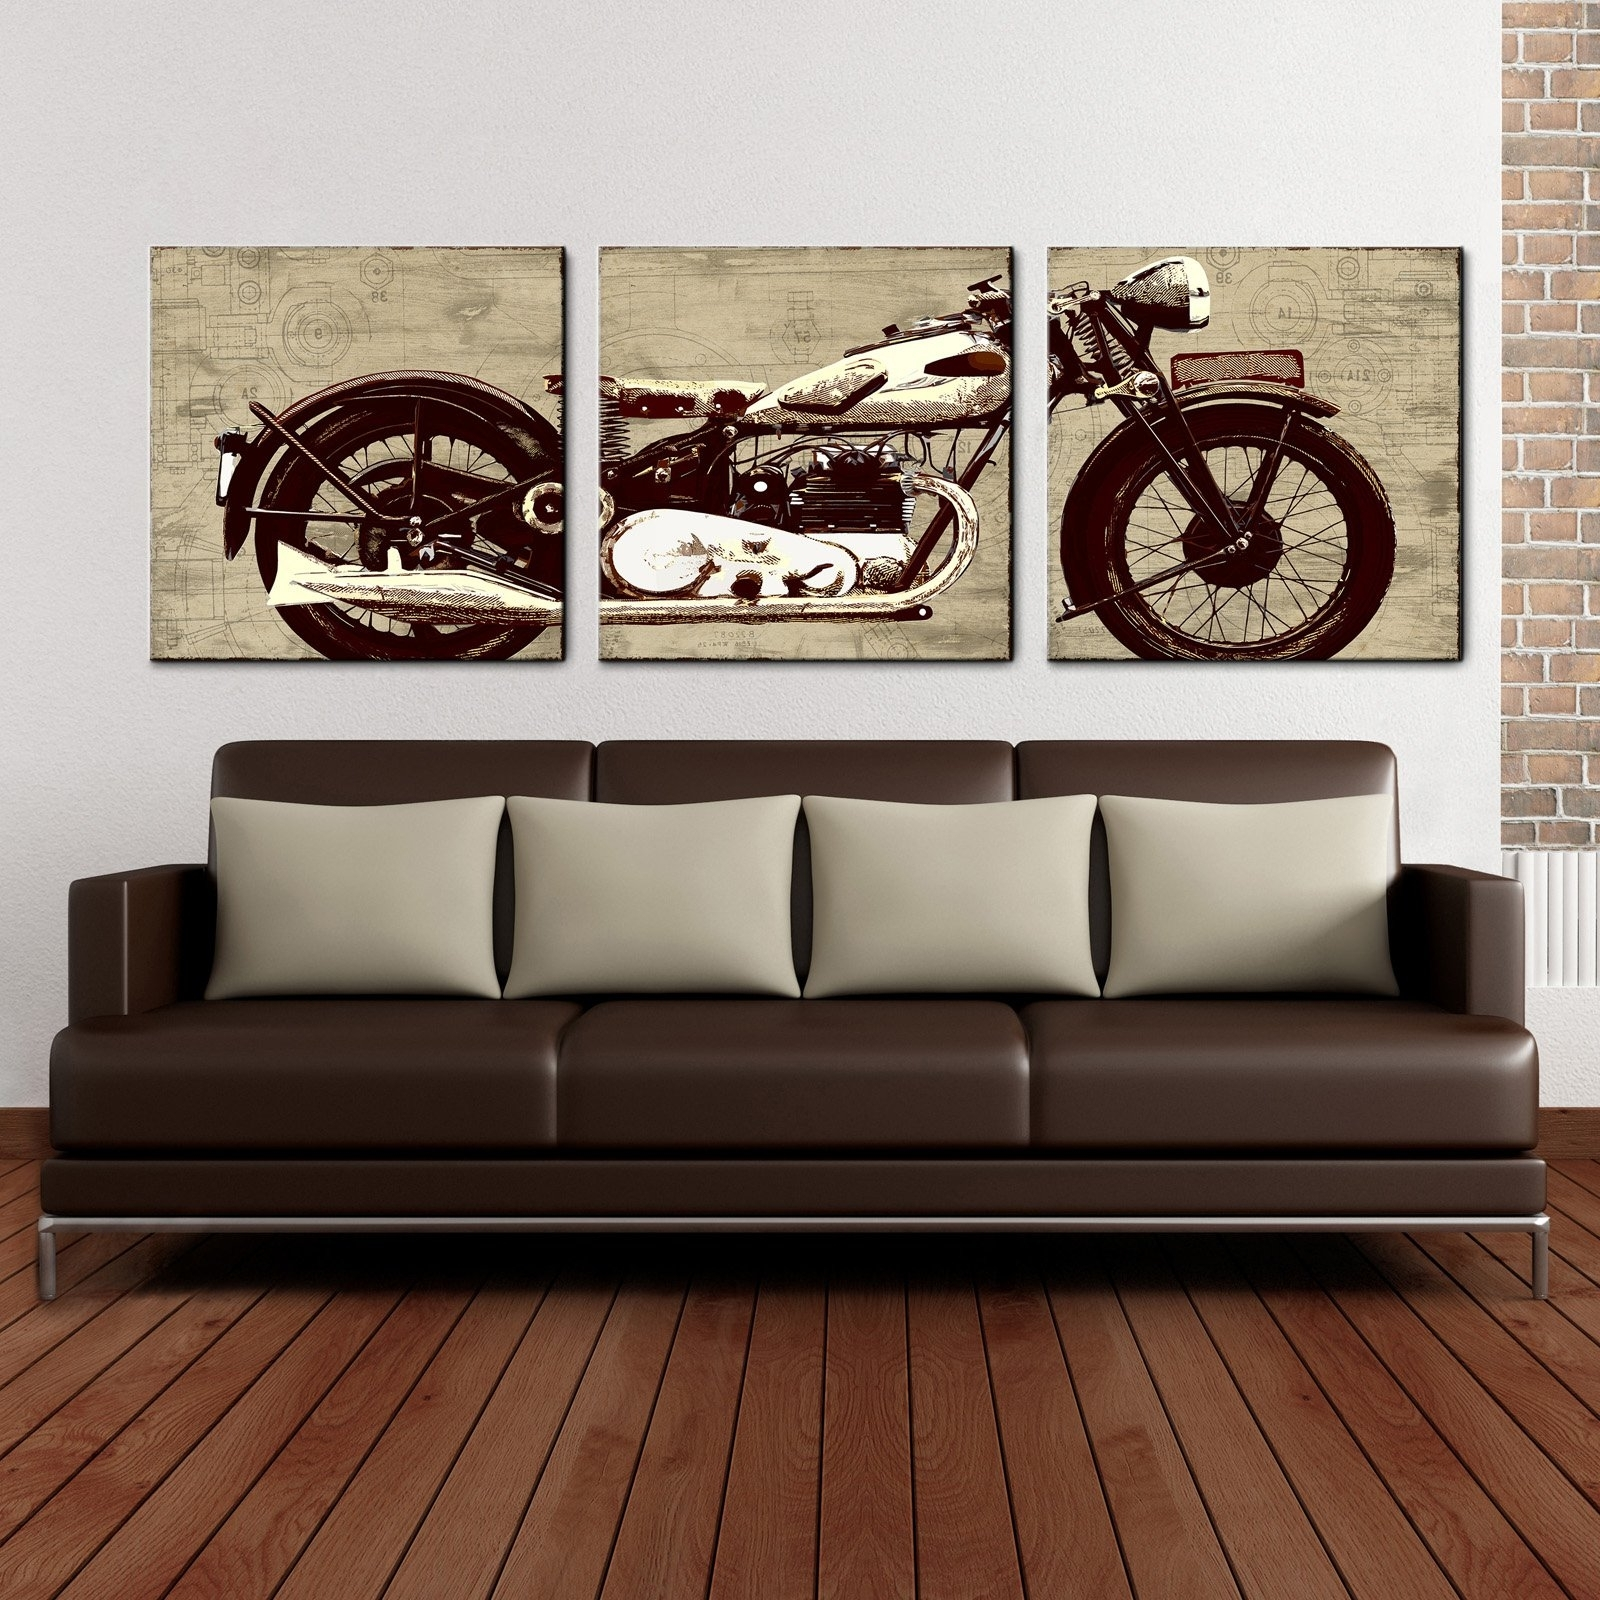 Recent Motorcycle 24 X 72 Canvas Art Print Triptych – Walmart Pertaining To Motorcycle Wall Art (View 14 of 15)